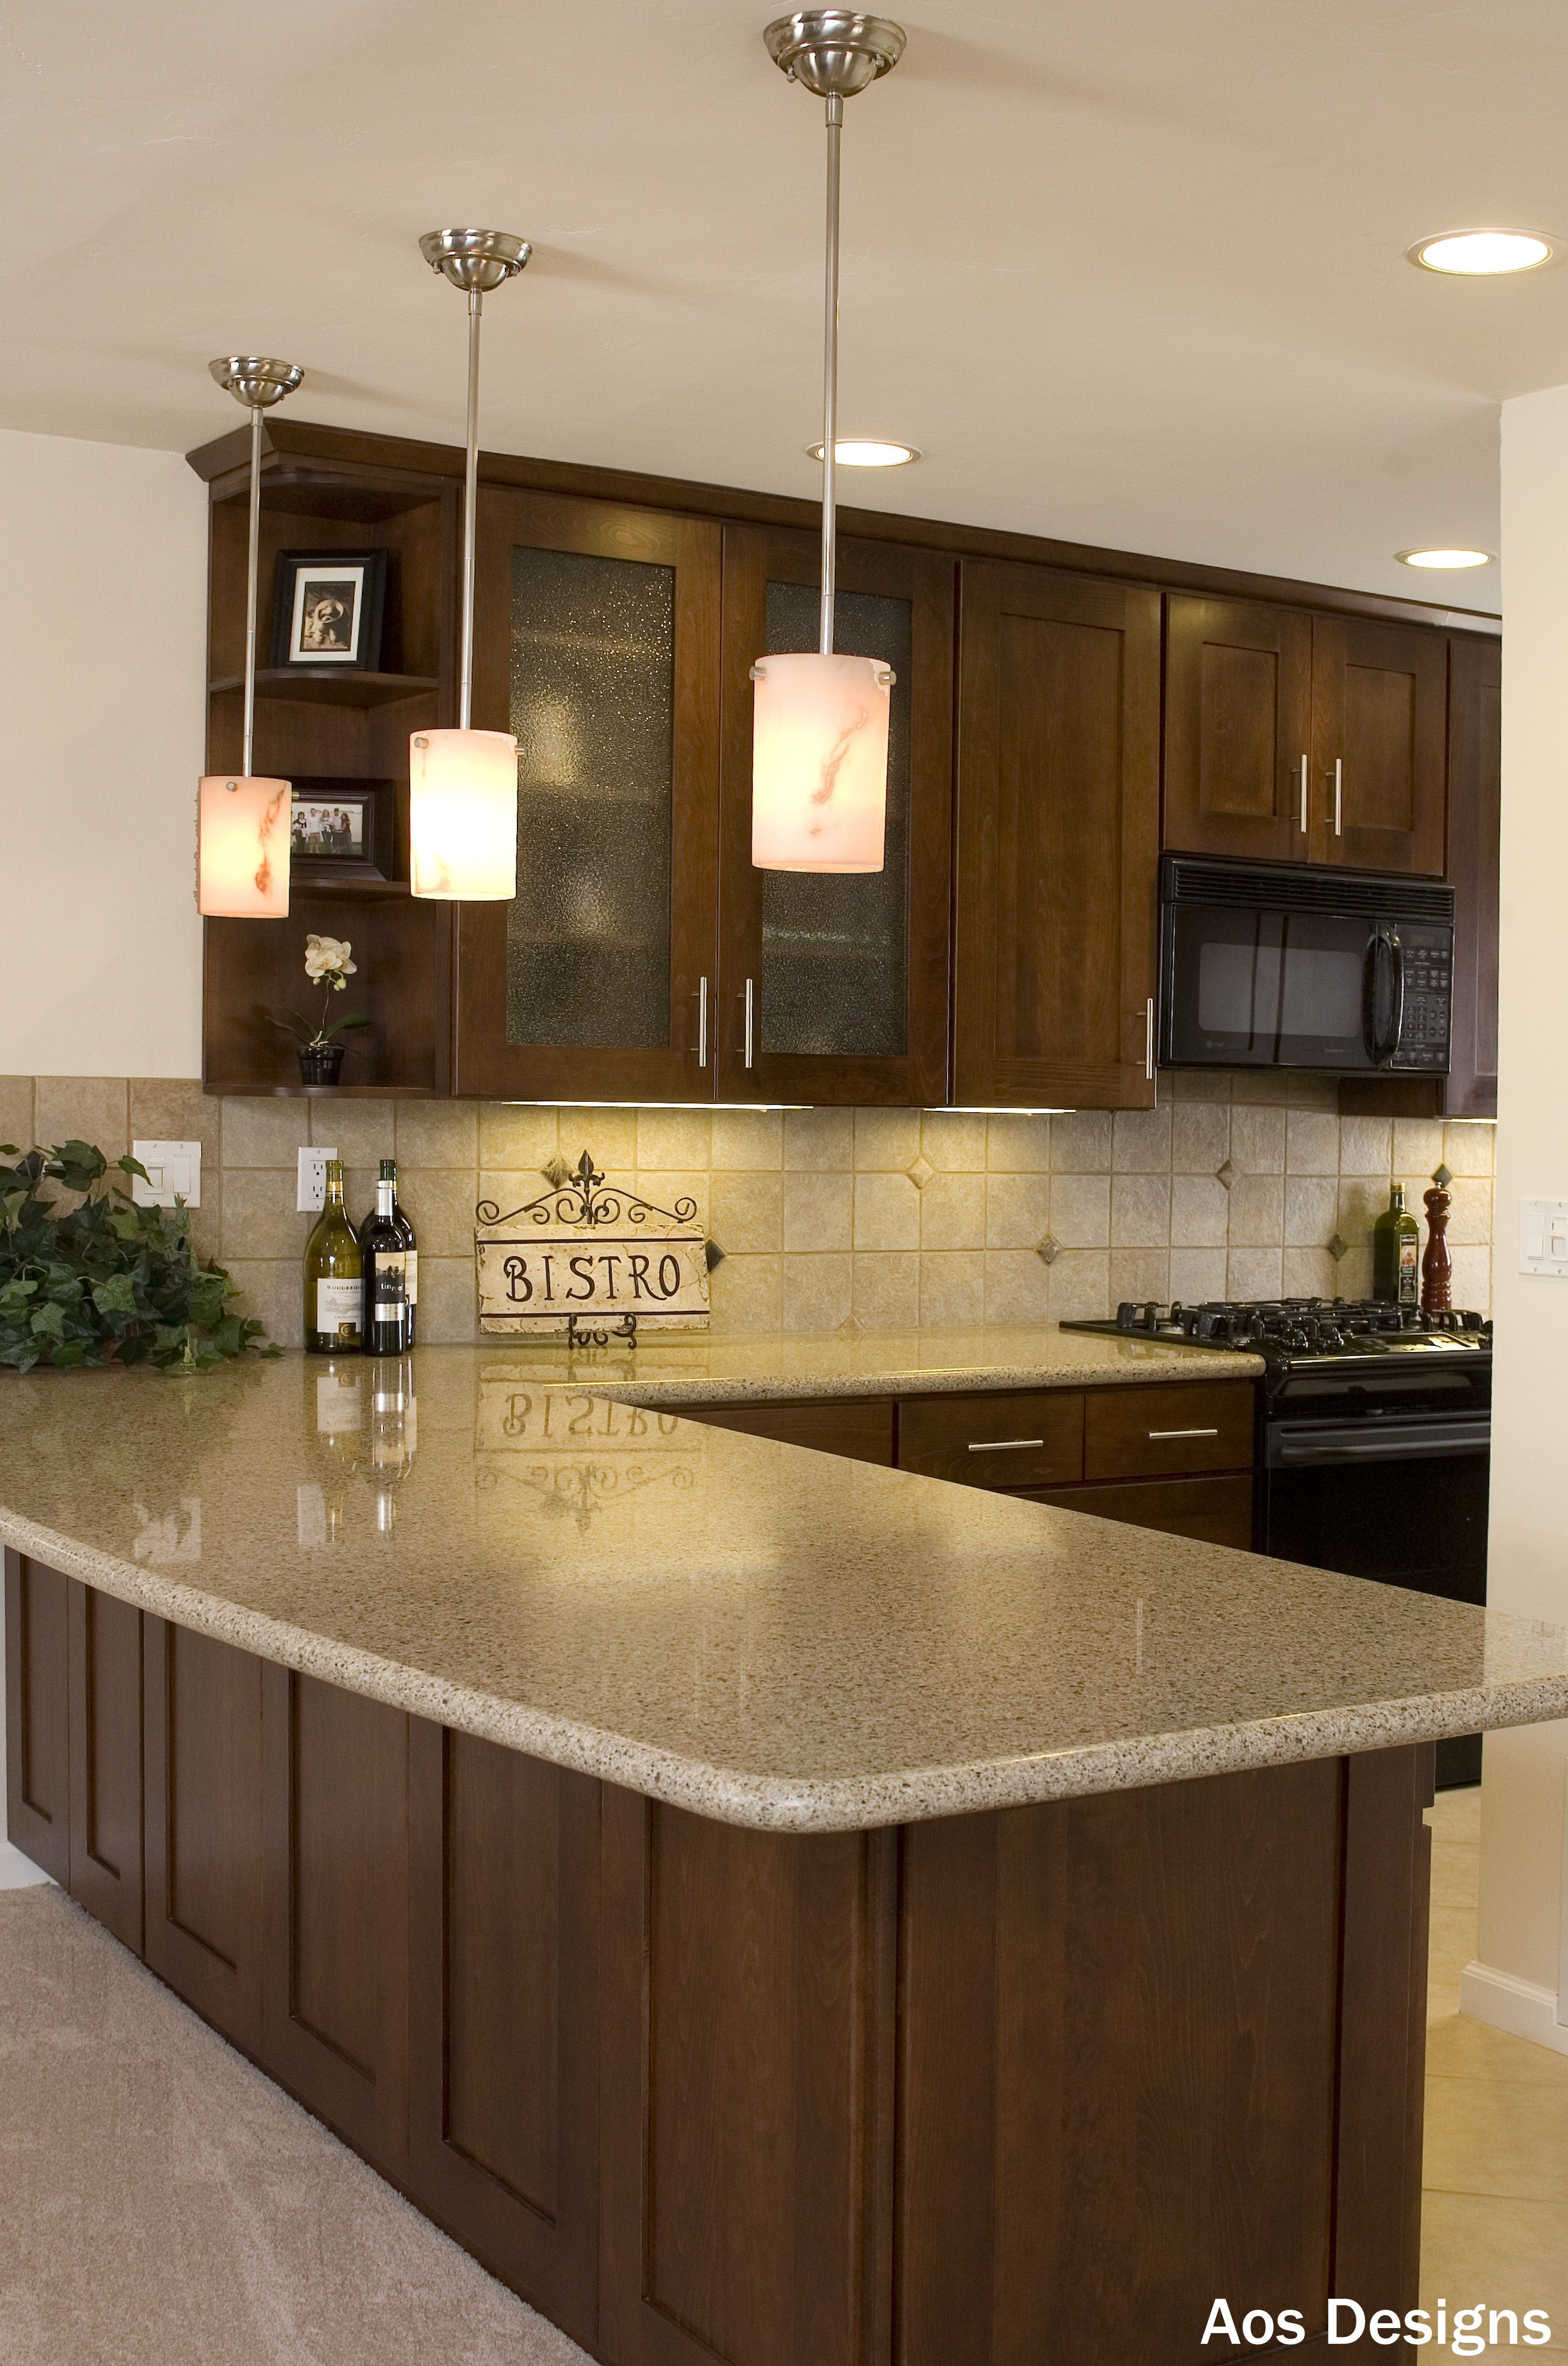 How Much Does It Cost To Remodel A Kitchen? | Best HOME